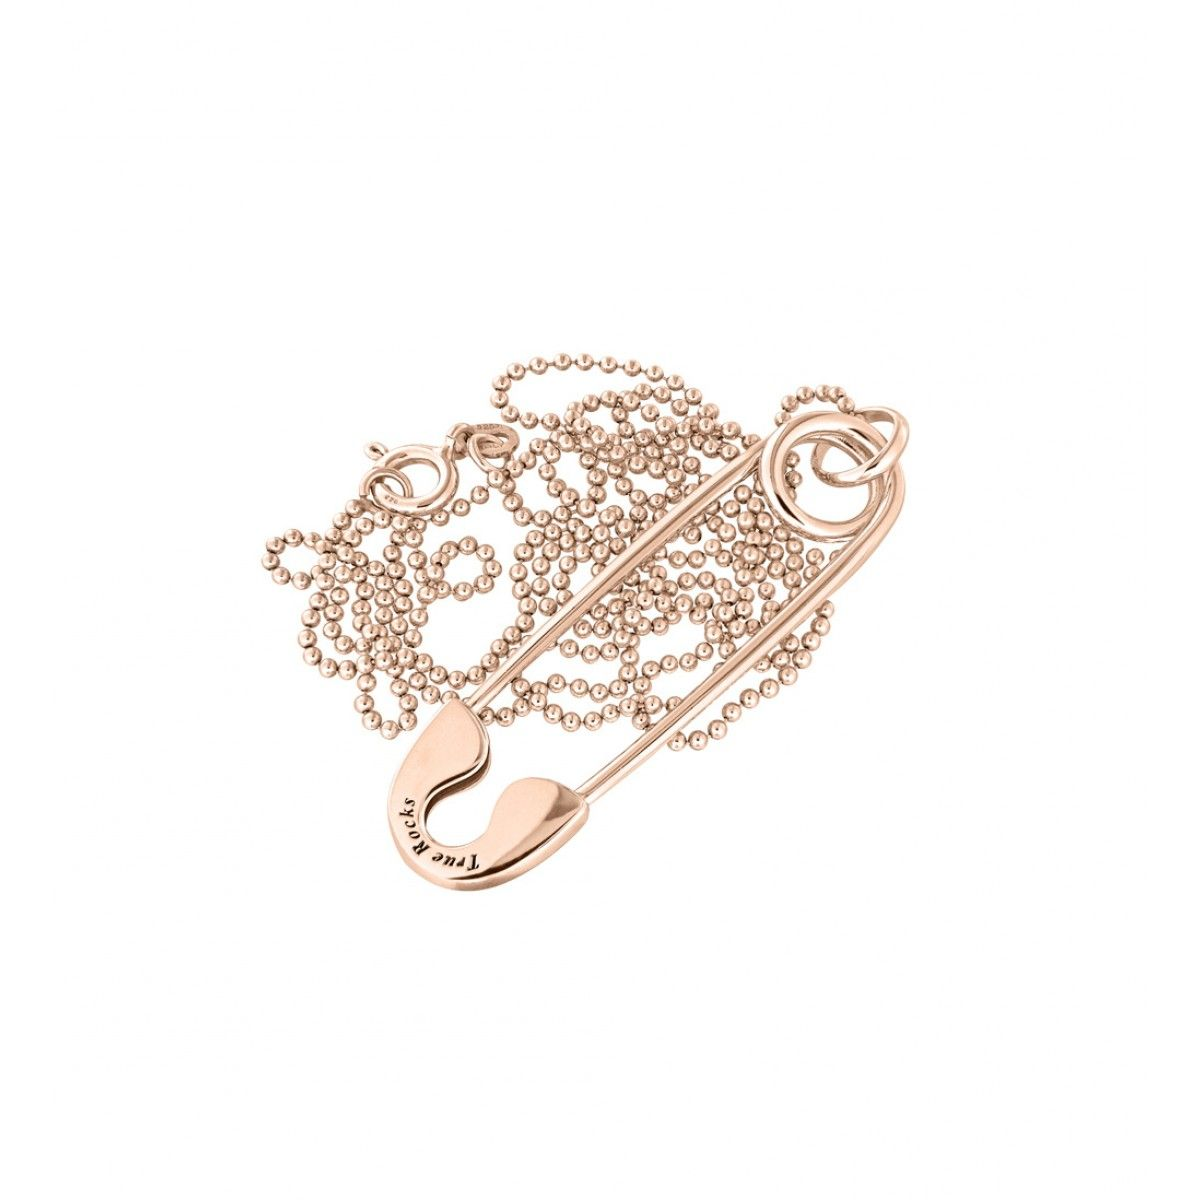 True Rocks Medium Rose Gold Plated Silver Safety Pin Pendant 48Gsp9gP